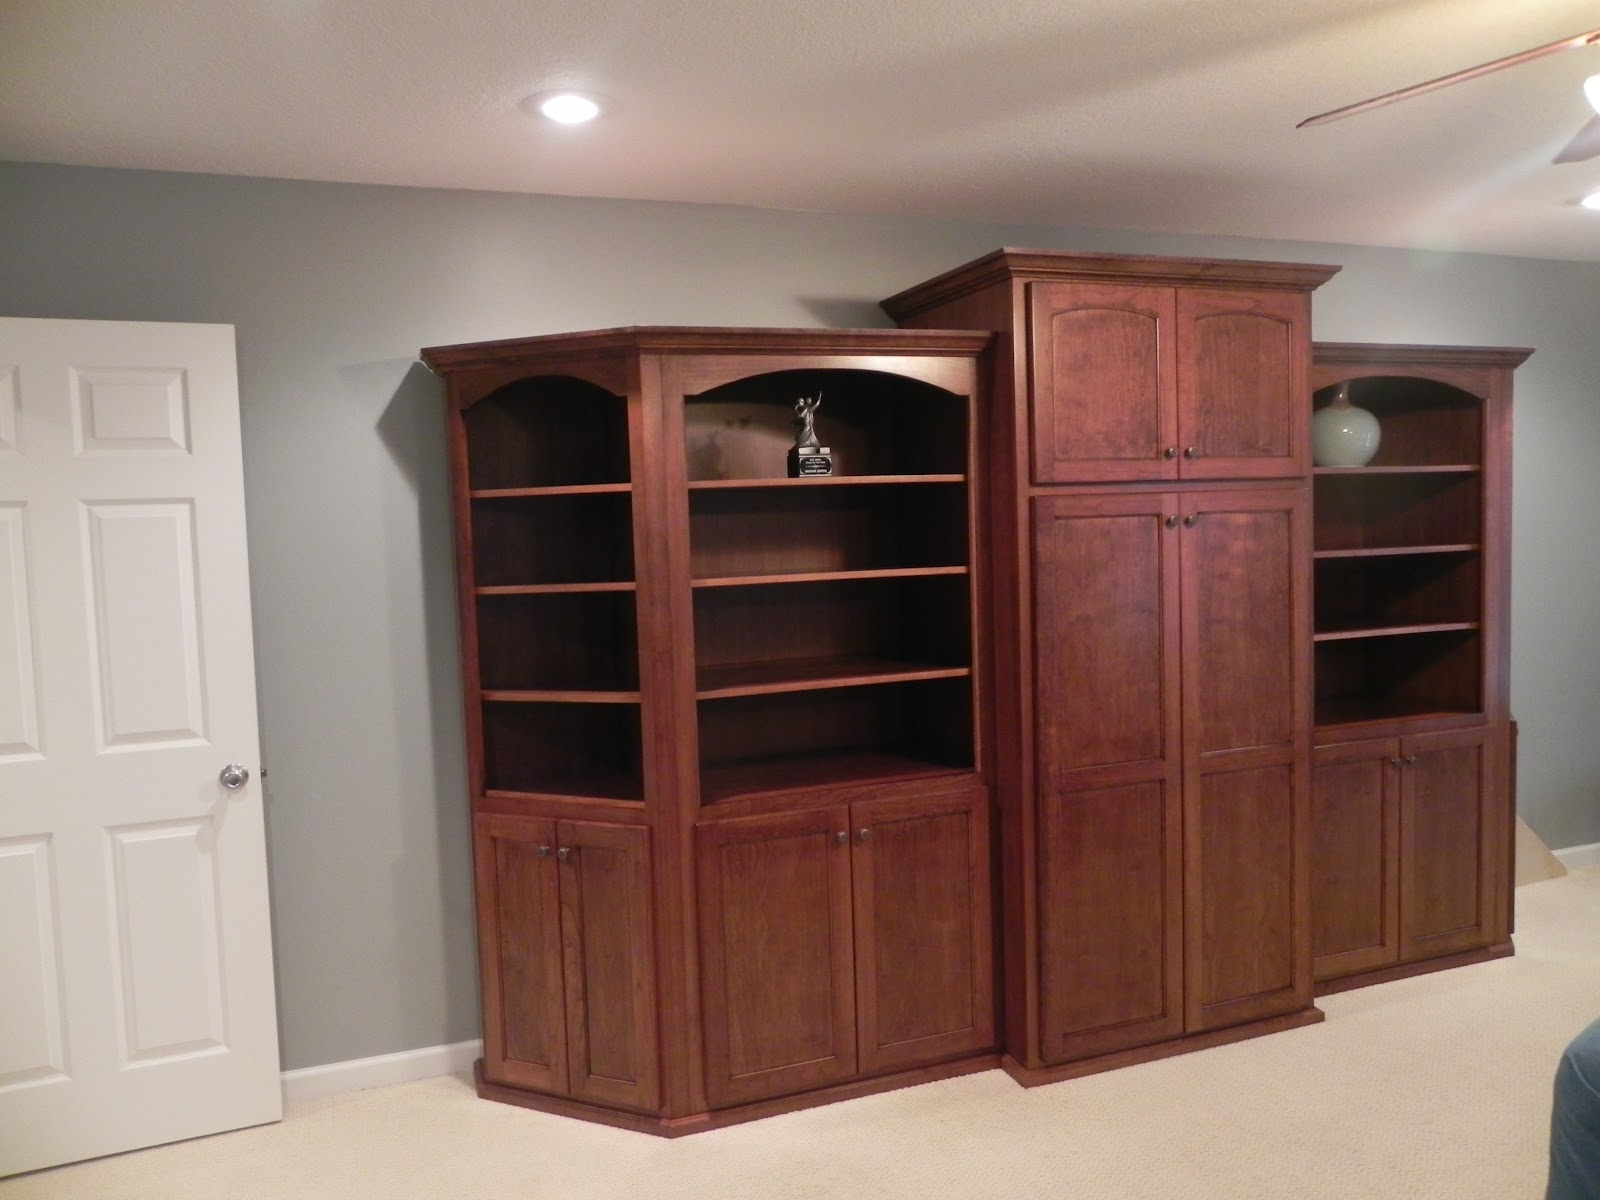 Cherry Bookcases And Alder Wood Kitchen Cabinets